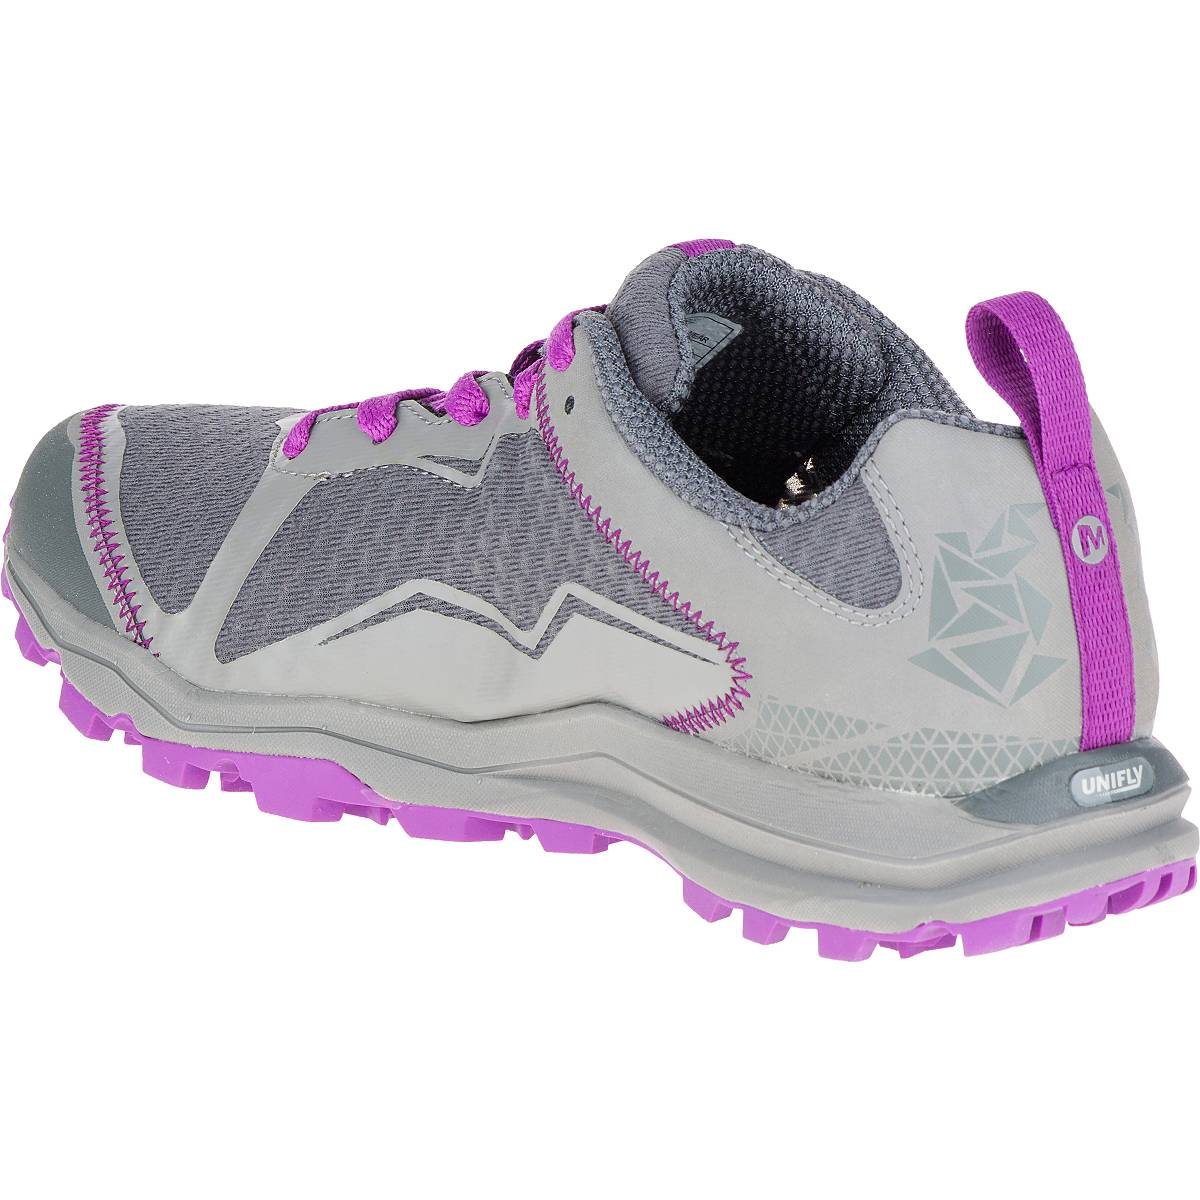 Merrell Womens Hiking Shoes Clearance